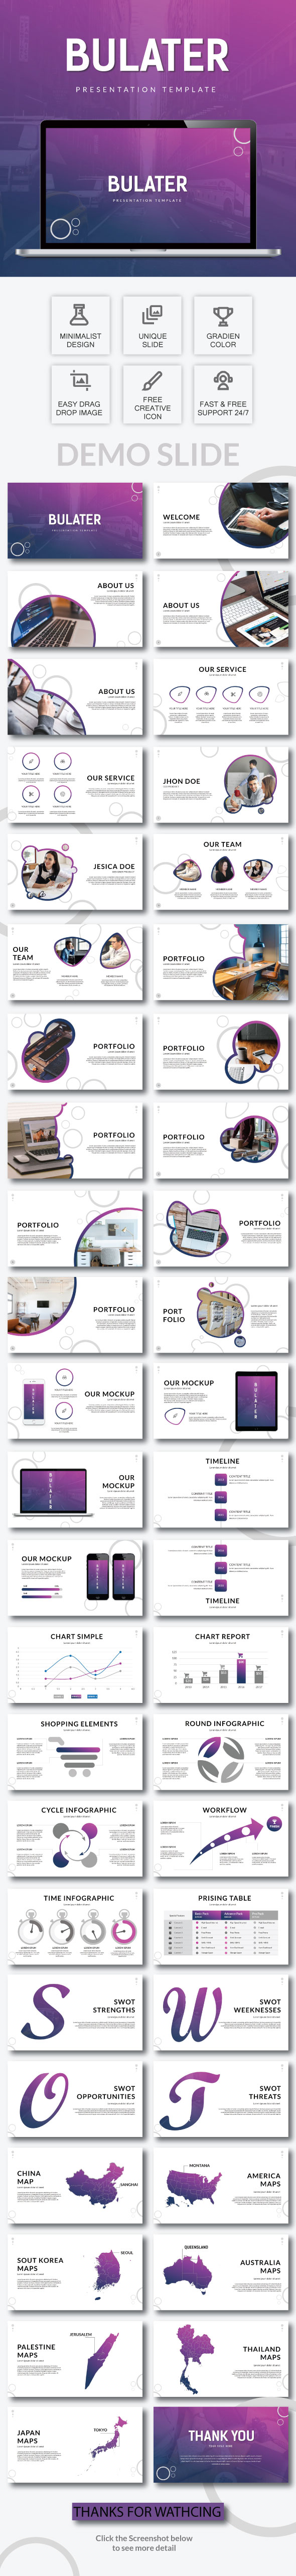 Bulater - Presentation Template - PowerPoint Templates Presentation Templates